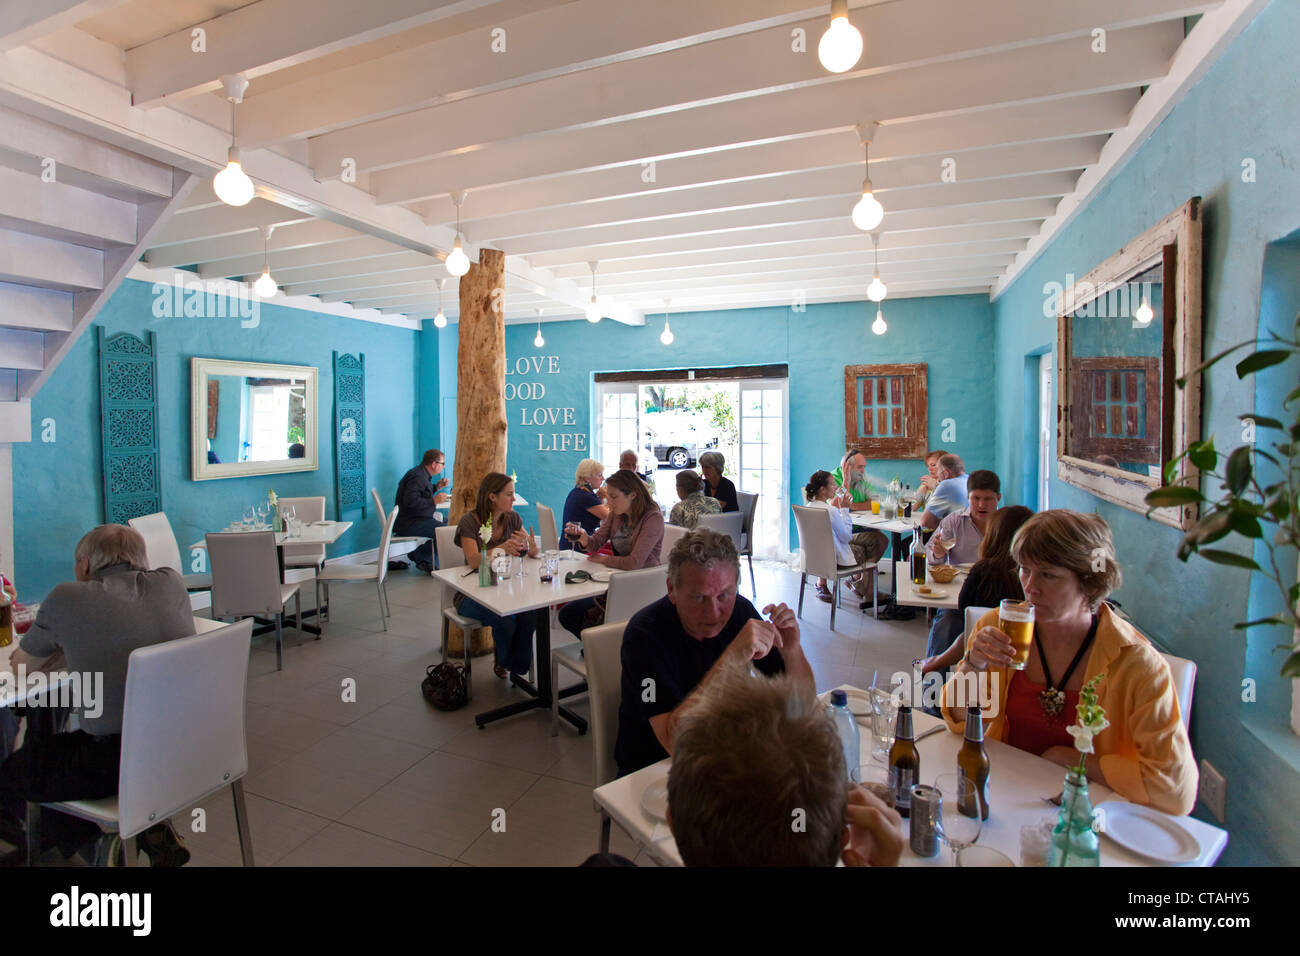 The restaurant foodbarn noordhoek western cape south for Food barn noordhoek